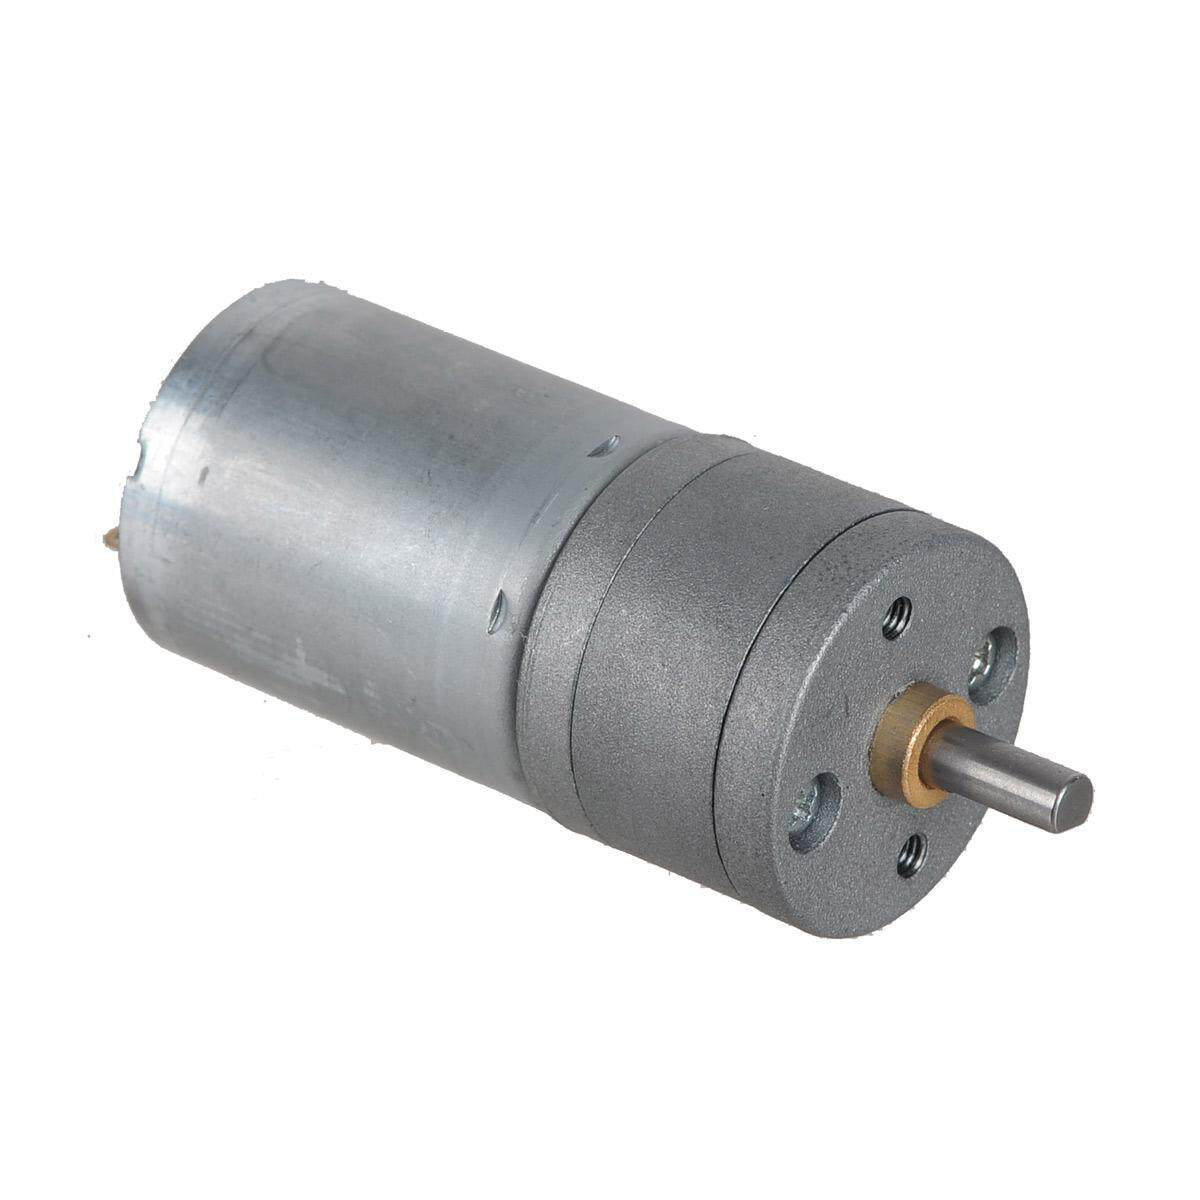 Zndiy-Bry Dc 12v 400rpm / Dc 6v 200rpm High Torque Gear Motor - Silver - Intl By Infinite-Deals